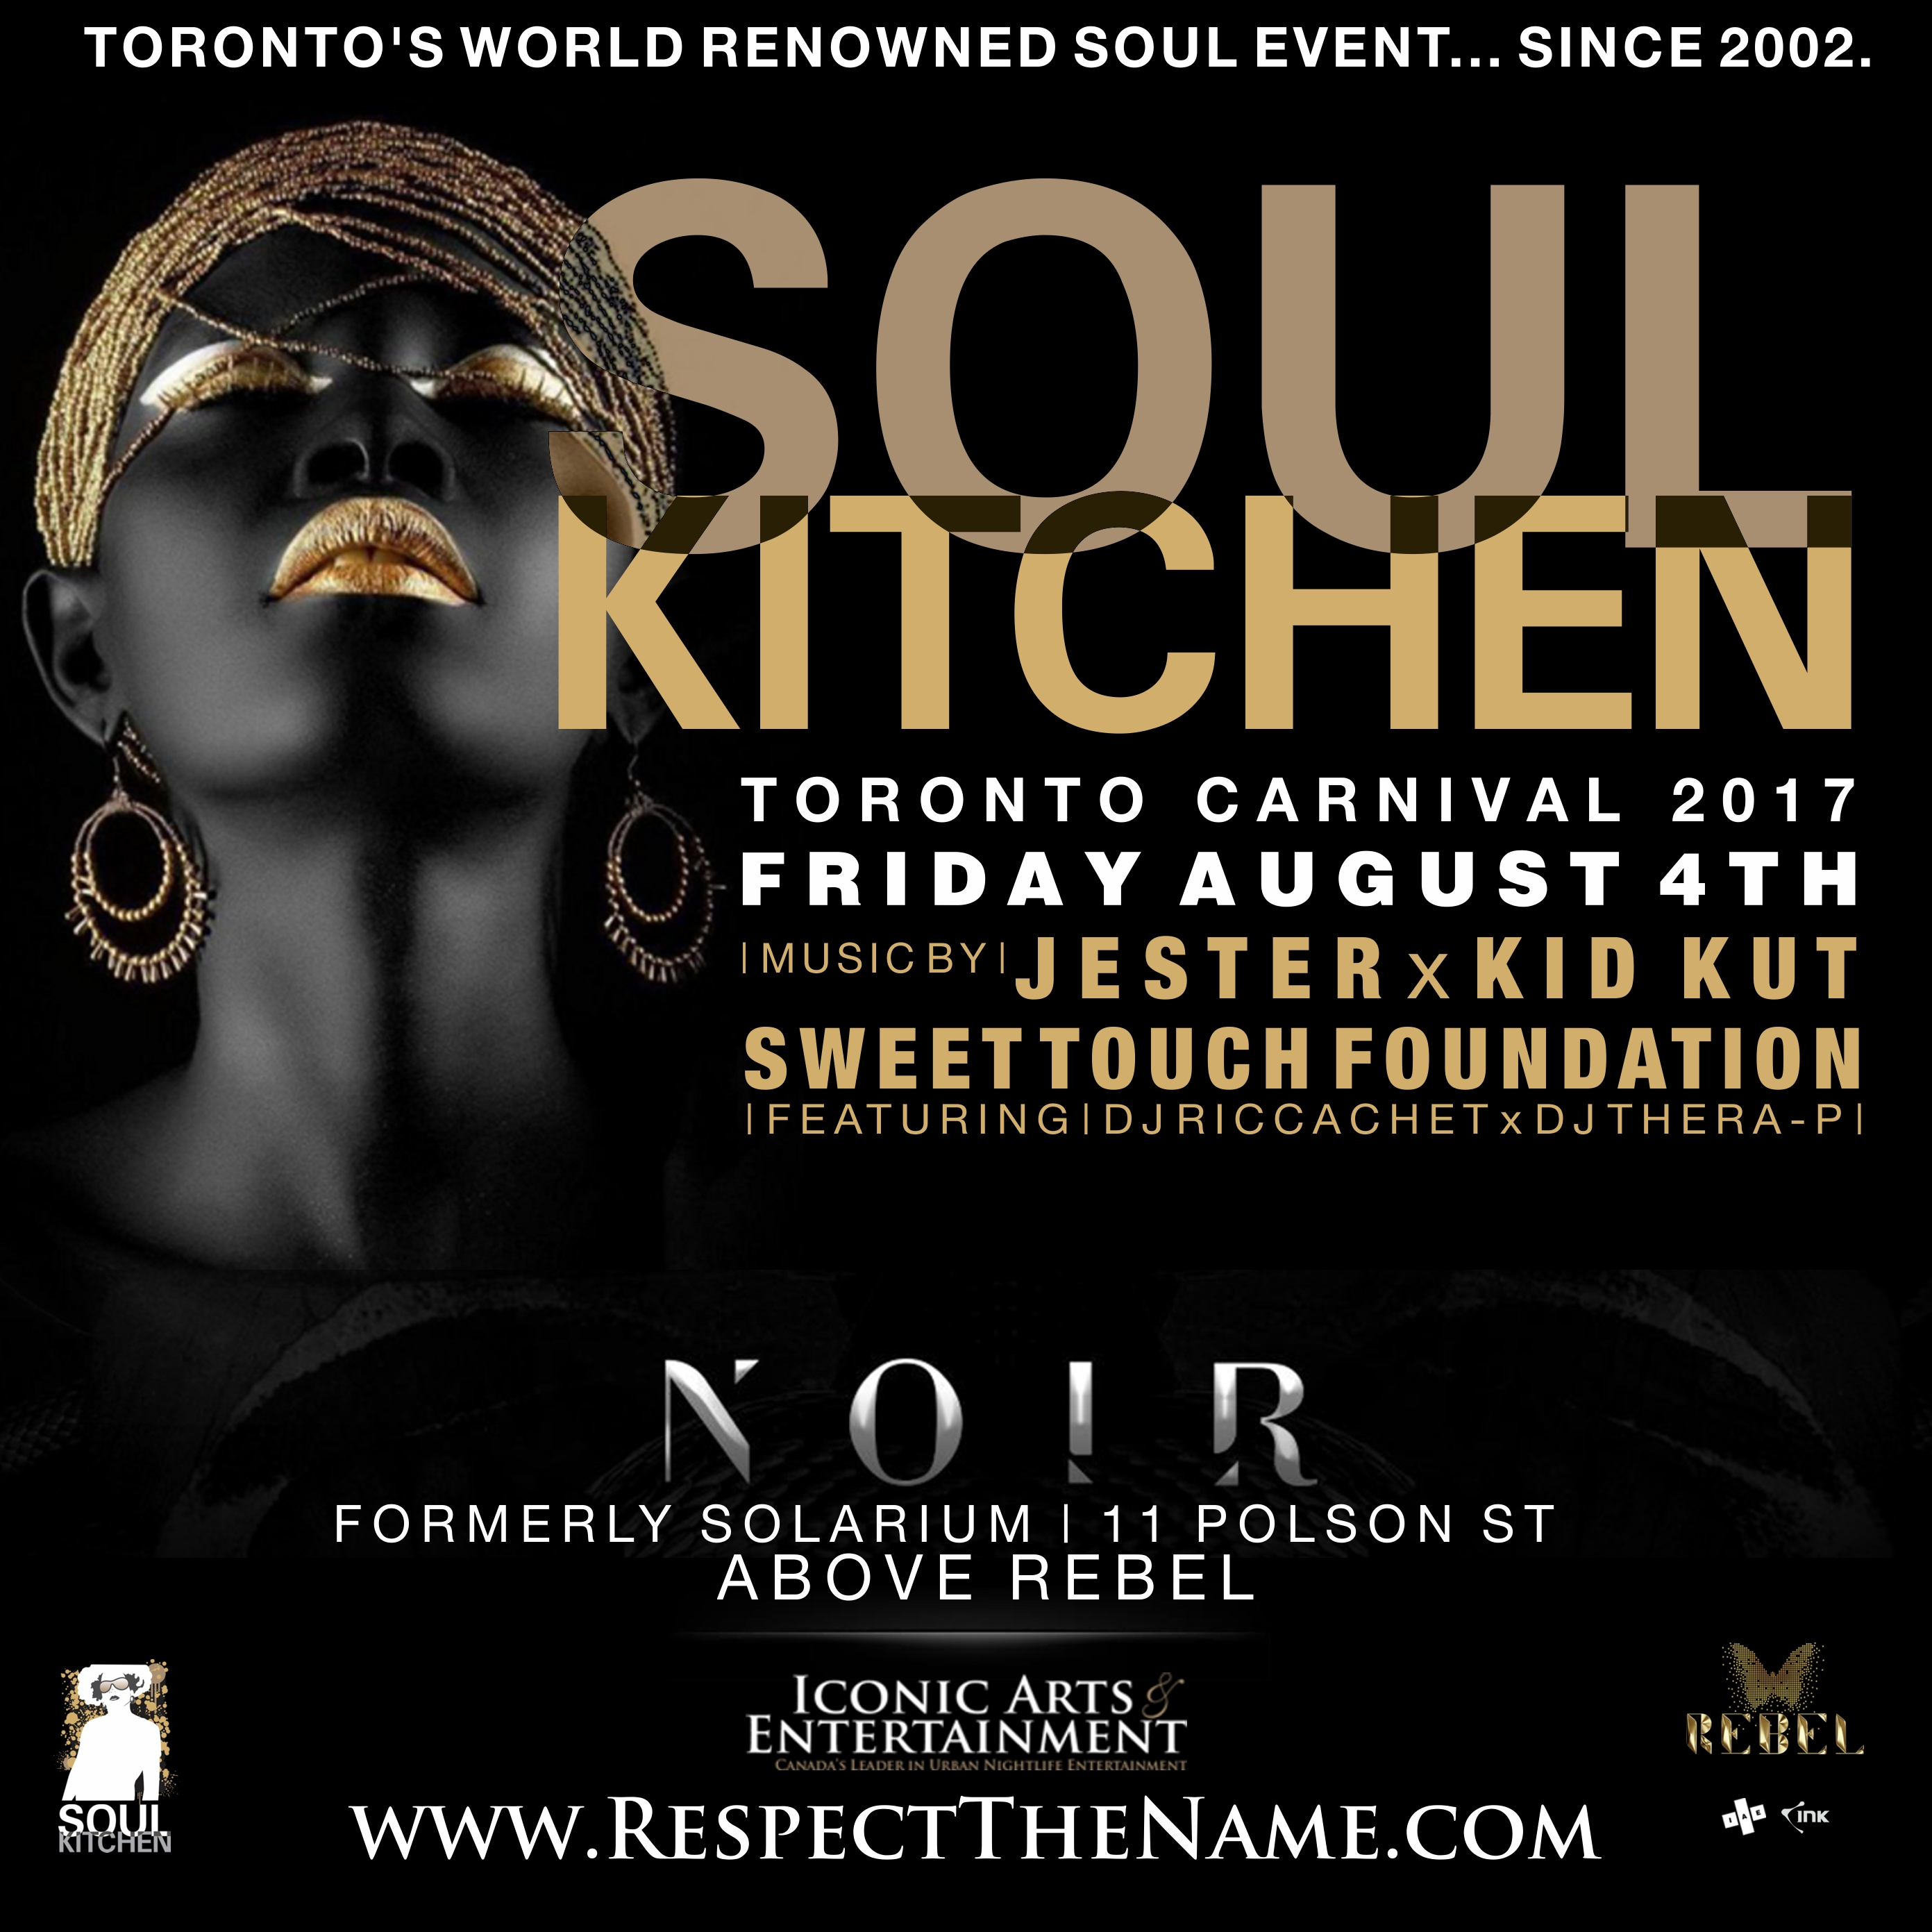 soul kitchen carnival edition 2017 friday august 4th 2017 noir